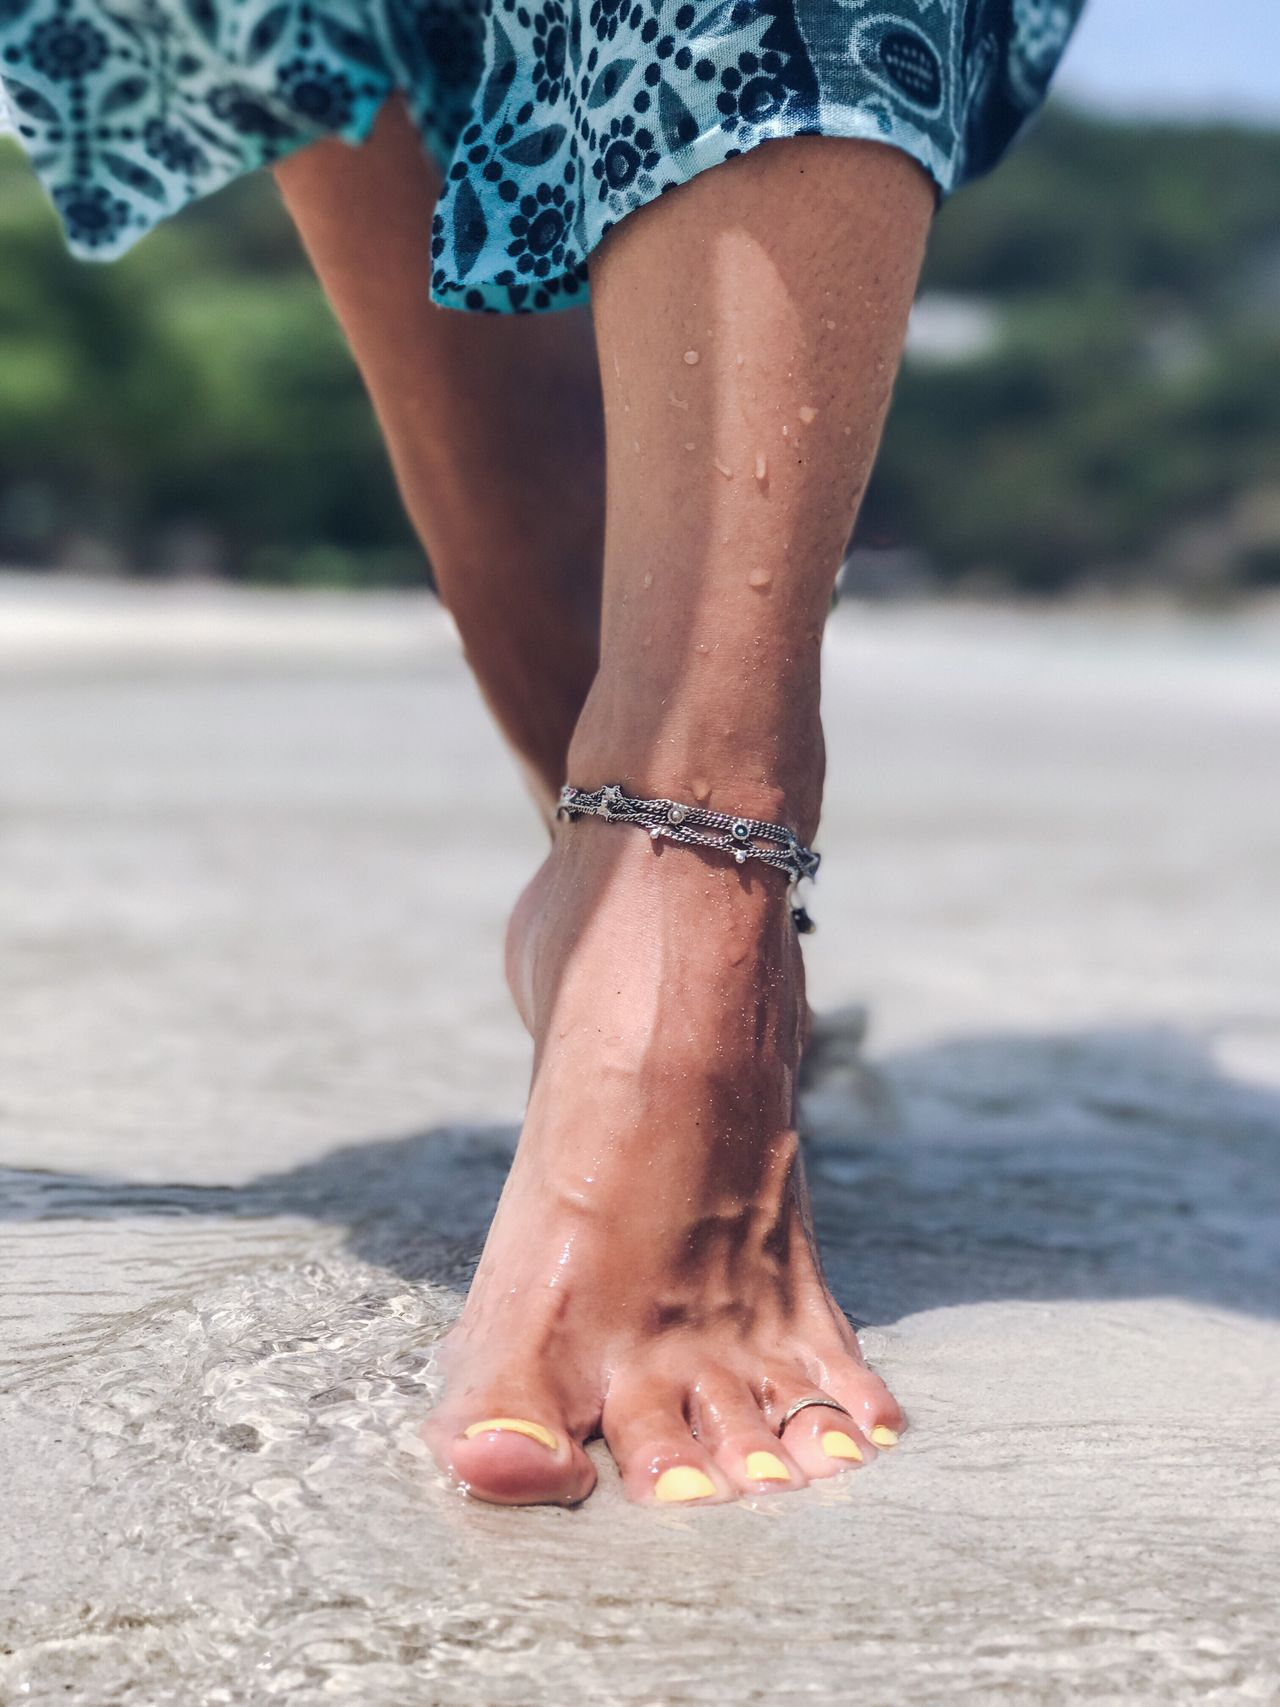 Real People One Person Low Section Outdoors Human Leg Wet Water Droplets Human Body Part Lifestyles Focus On Foreground Standing Leisure Activity Beach Women Water Human Hand Close-up Nail Polish Walking Human Foot Sand Blue Skirt Ankle Bracelet Jewelry Silver Bracelet